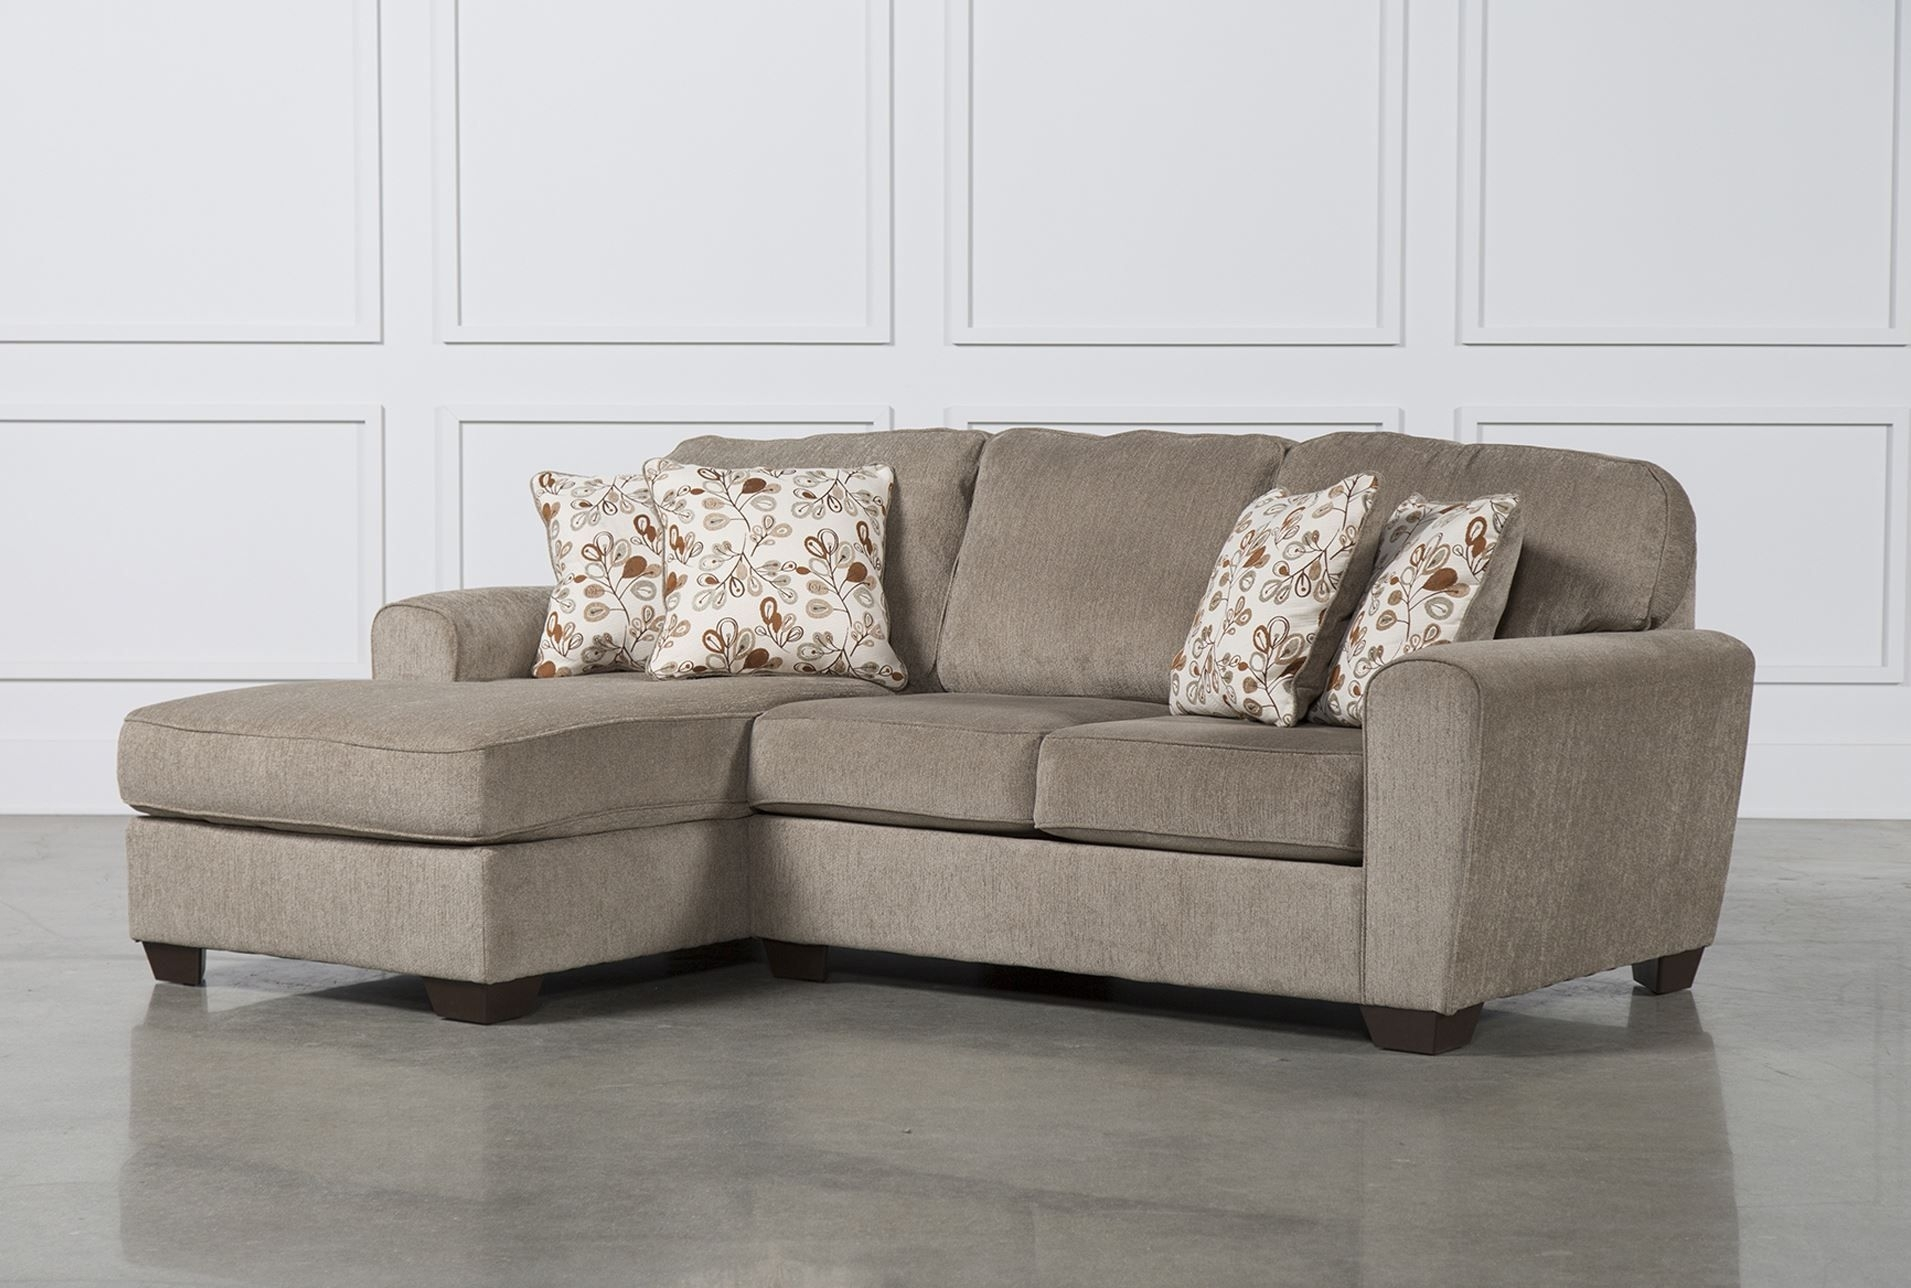 Patola Park 2 Piece Sectional W/laf Chaise | Home Improvements Pertaining To Blaine 3 Piece Sectionals (Image 18 of 25)